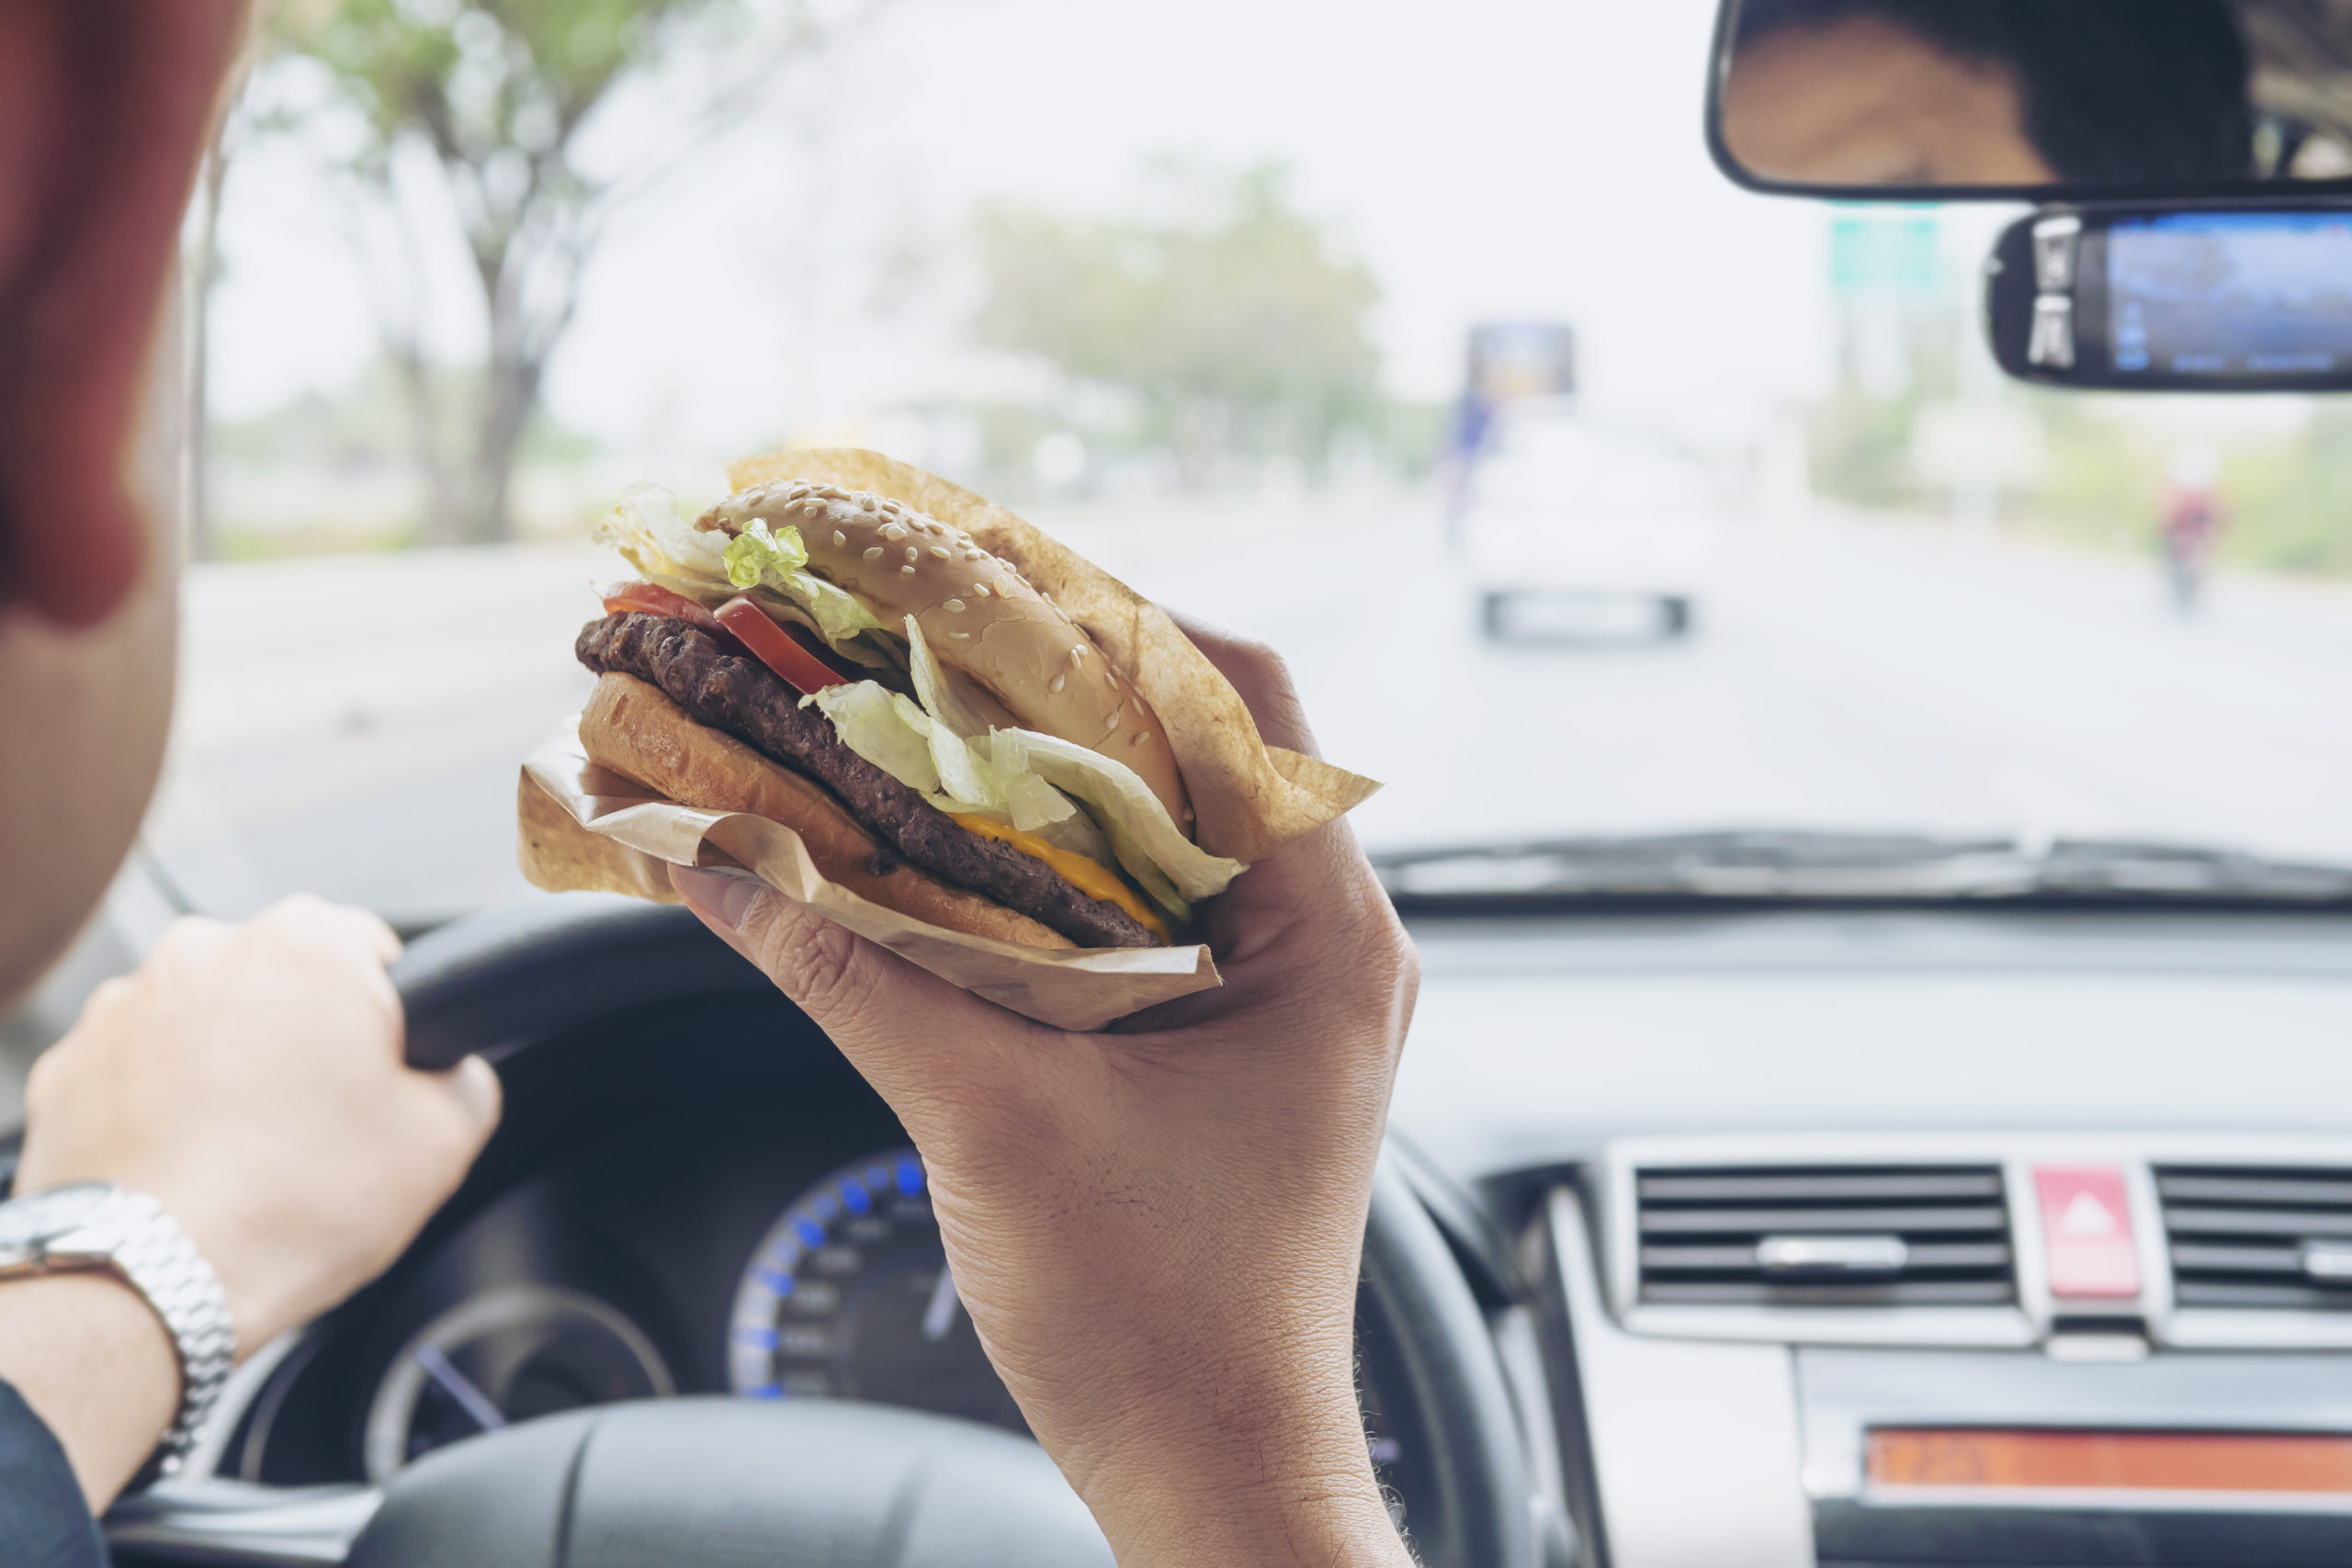 Food stains in car from fast food